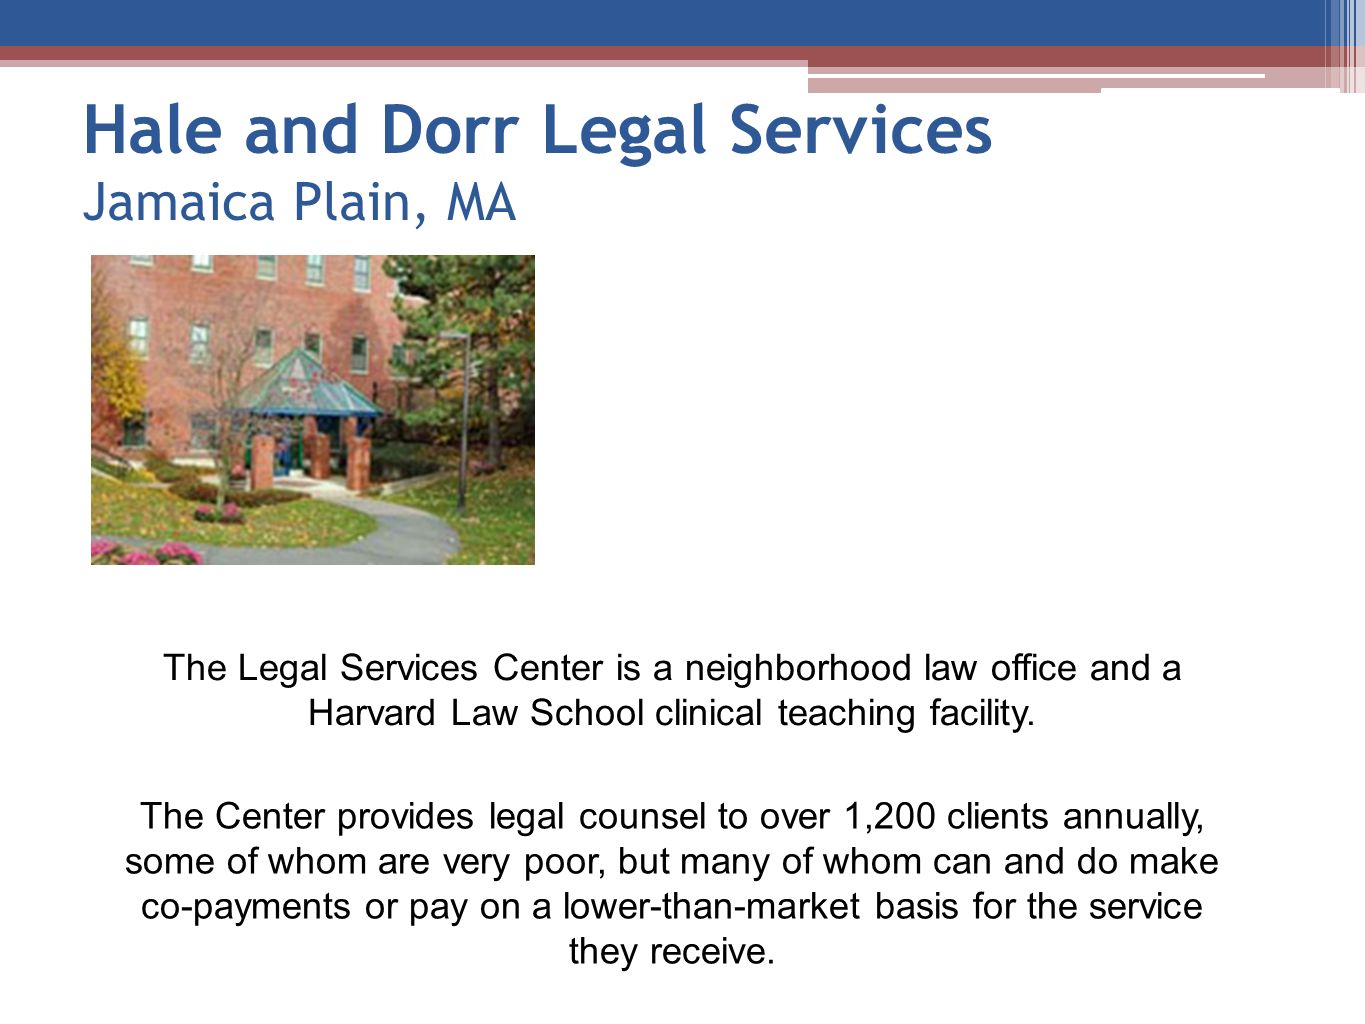 Hale and Dorr Legal Services Jamaica Plain, MA The Legal Services Center is a neighborhood law office and a Harvard Law School clinical teaching facil